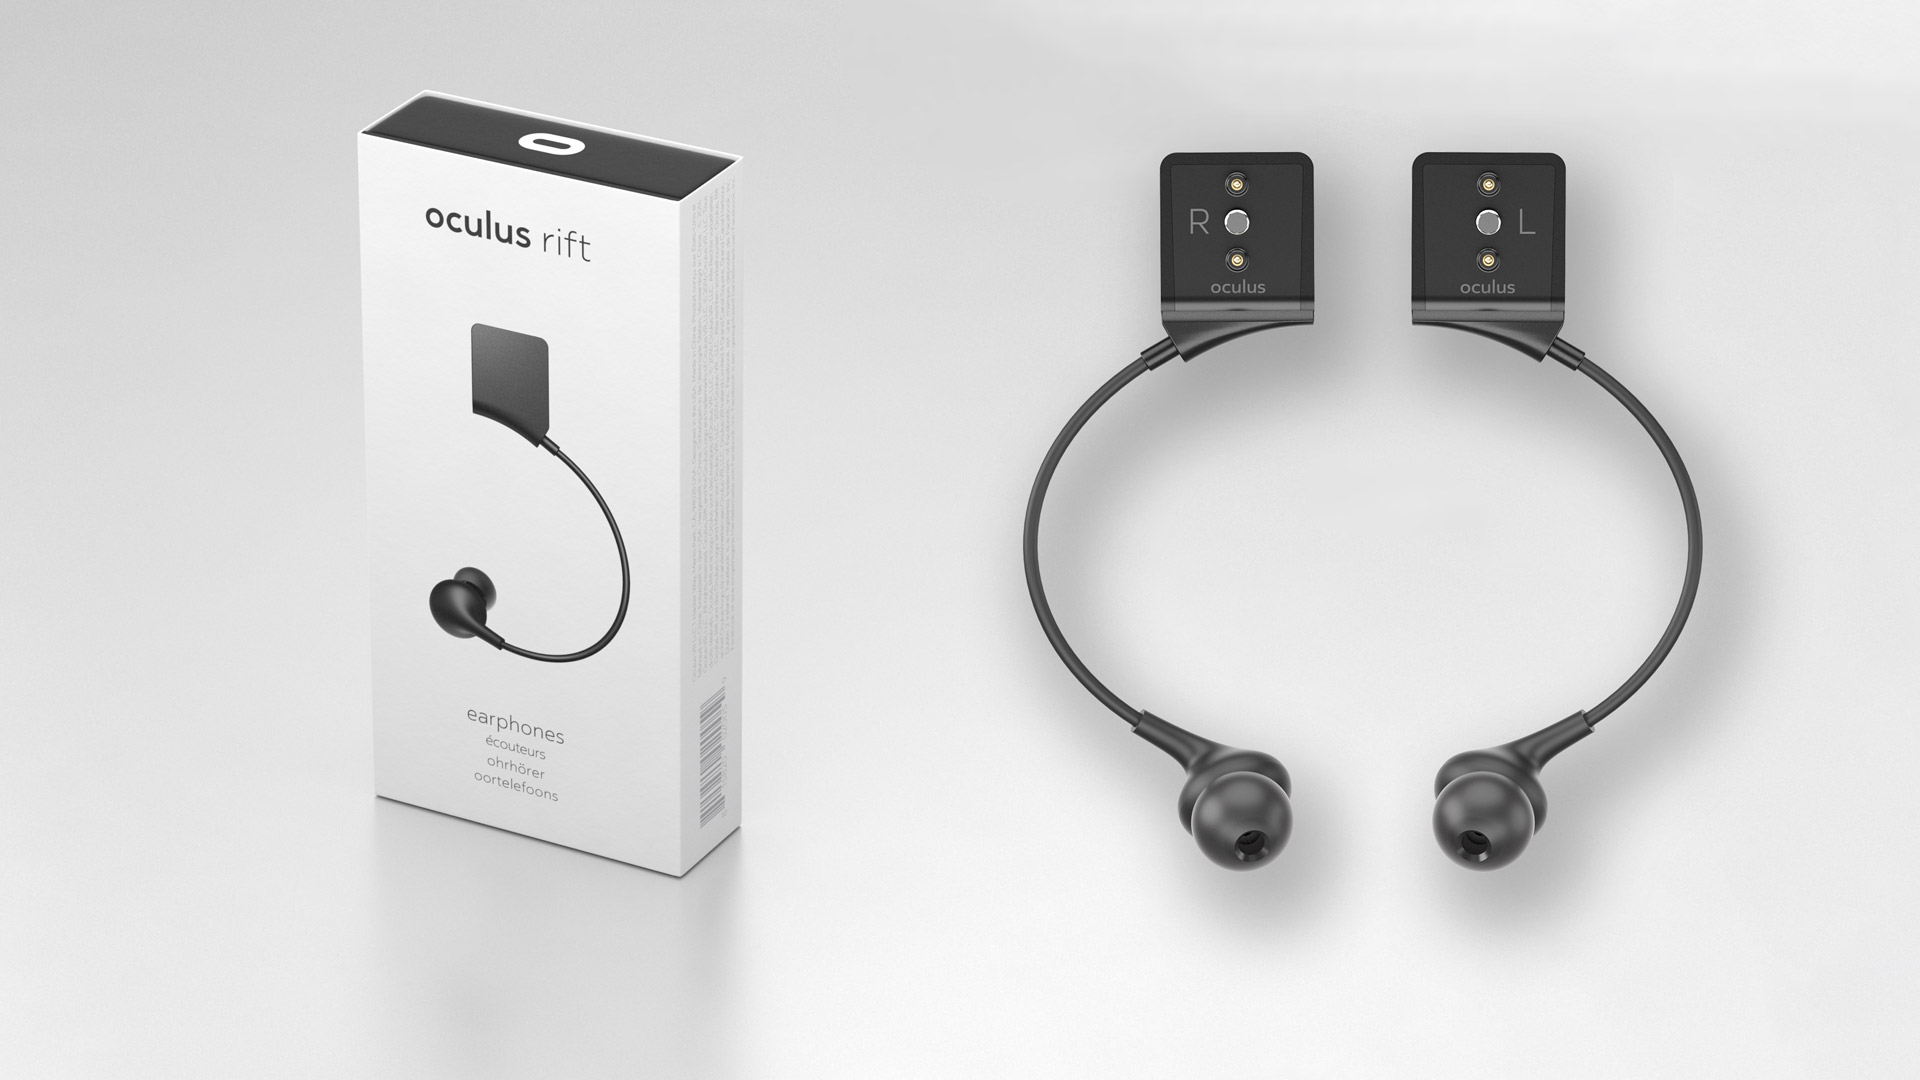 Vr Headset Comparison >> Oculus Earphones Review, Comparison with High-end Earbuds